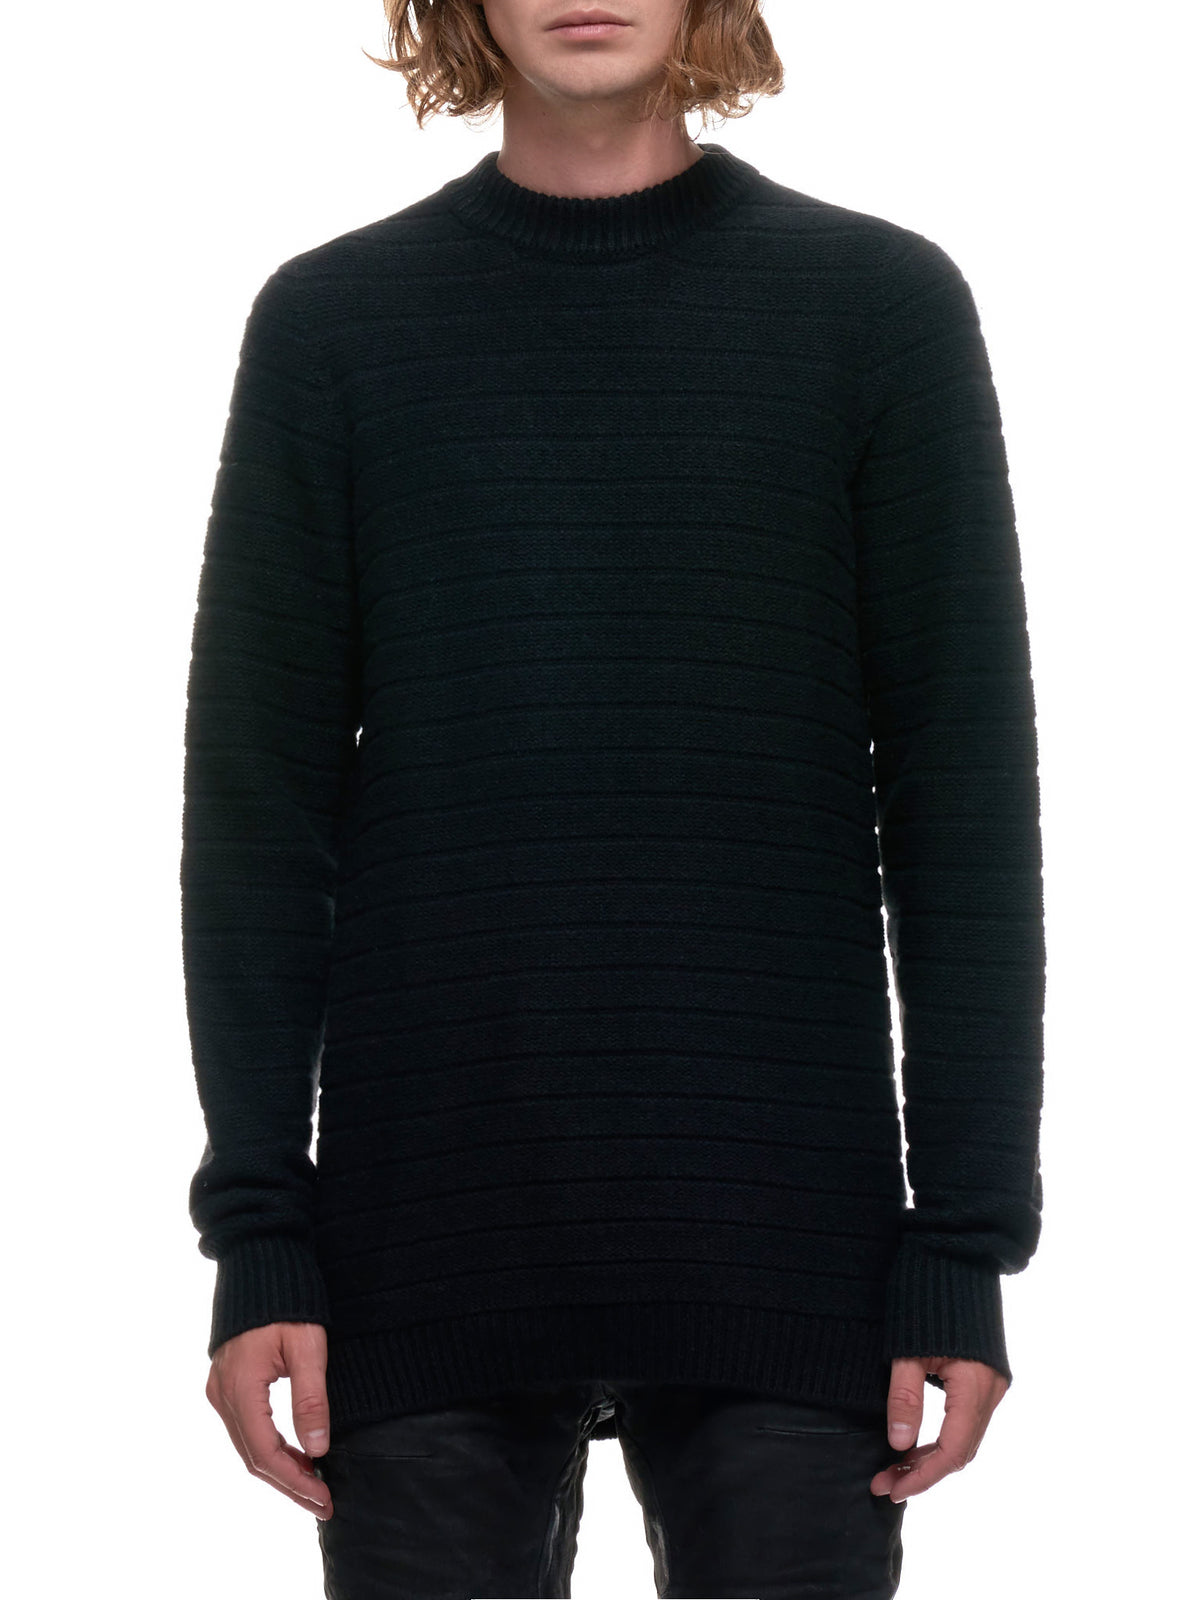 3D Seamless Knitted Sweater (KN5-FPI30003-BLACK)